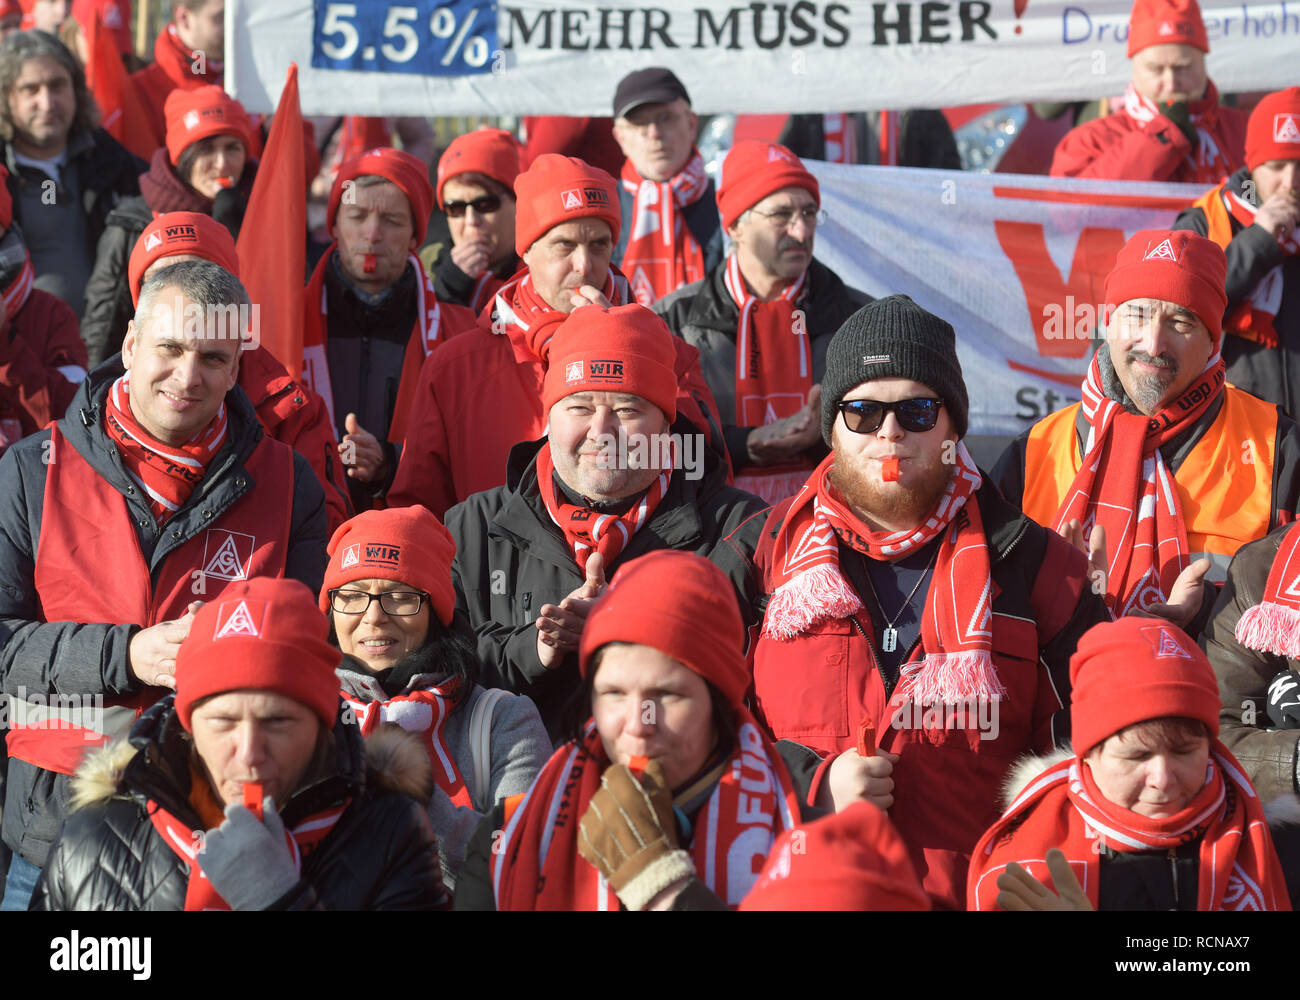 Neu Ulm, Germany. 16th Jan, 2019. Trade unionists demonstrating with whistles and banners in front of a conference hotel The second round of collective bargaining for the nearly 100,000 employees in the West German textile and clothing industry will take place there. Credit: Stefan Puchner/dpa/Alamy Live News - Stock Image